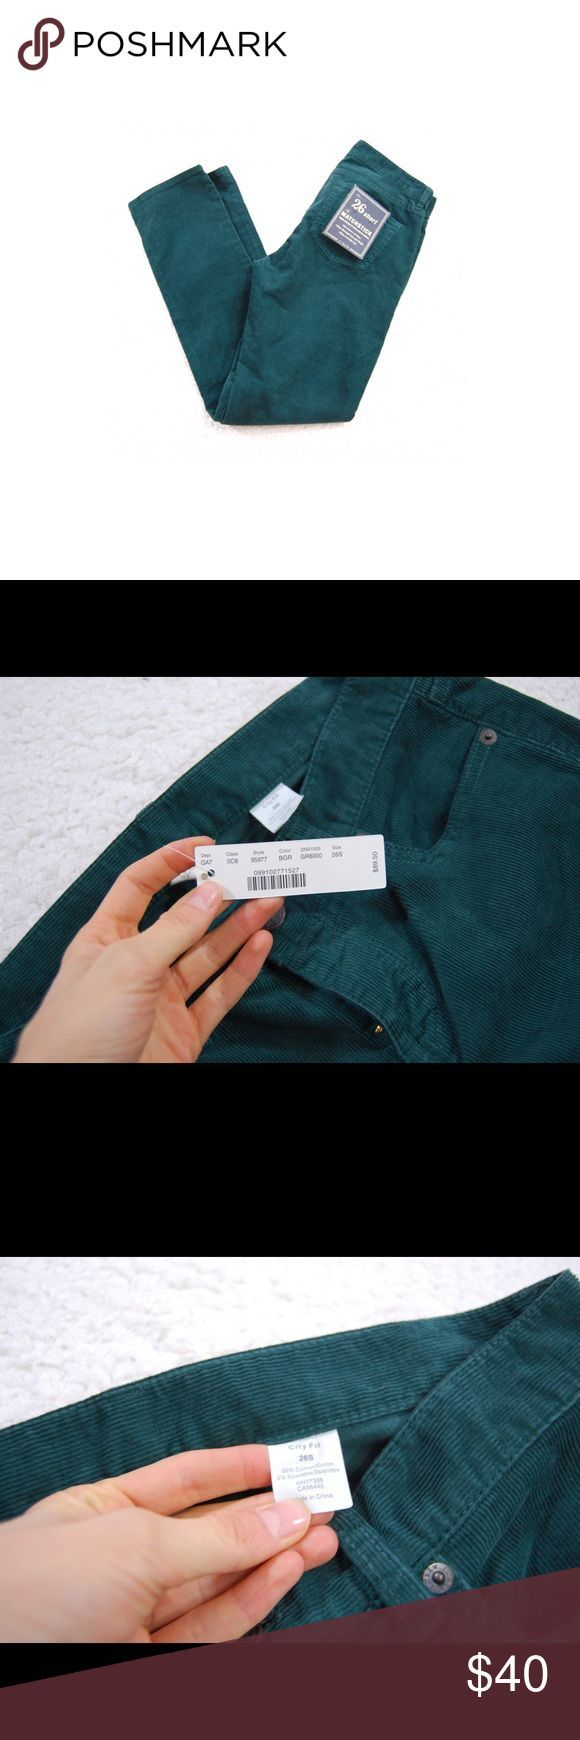 J crew matchstick Jeans Corduroy forest green NWT J crew matchstick Jeans Cordur…